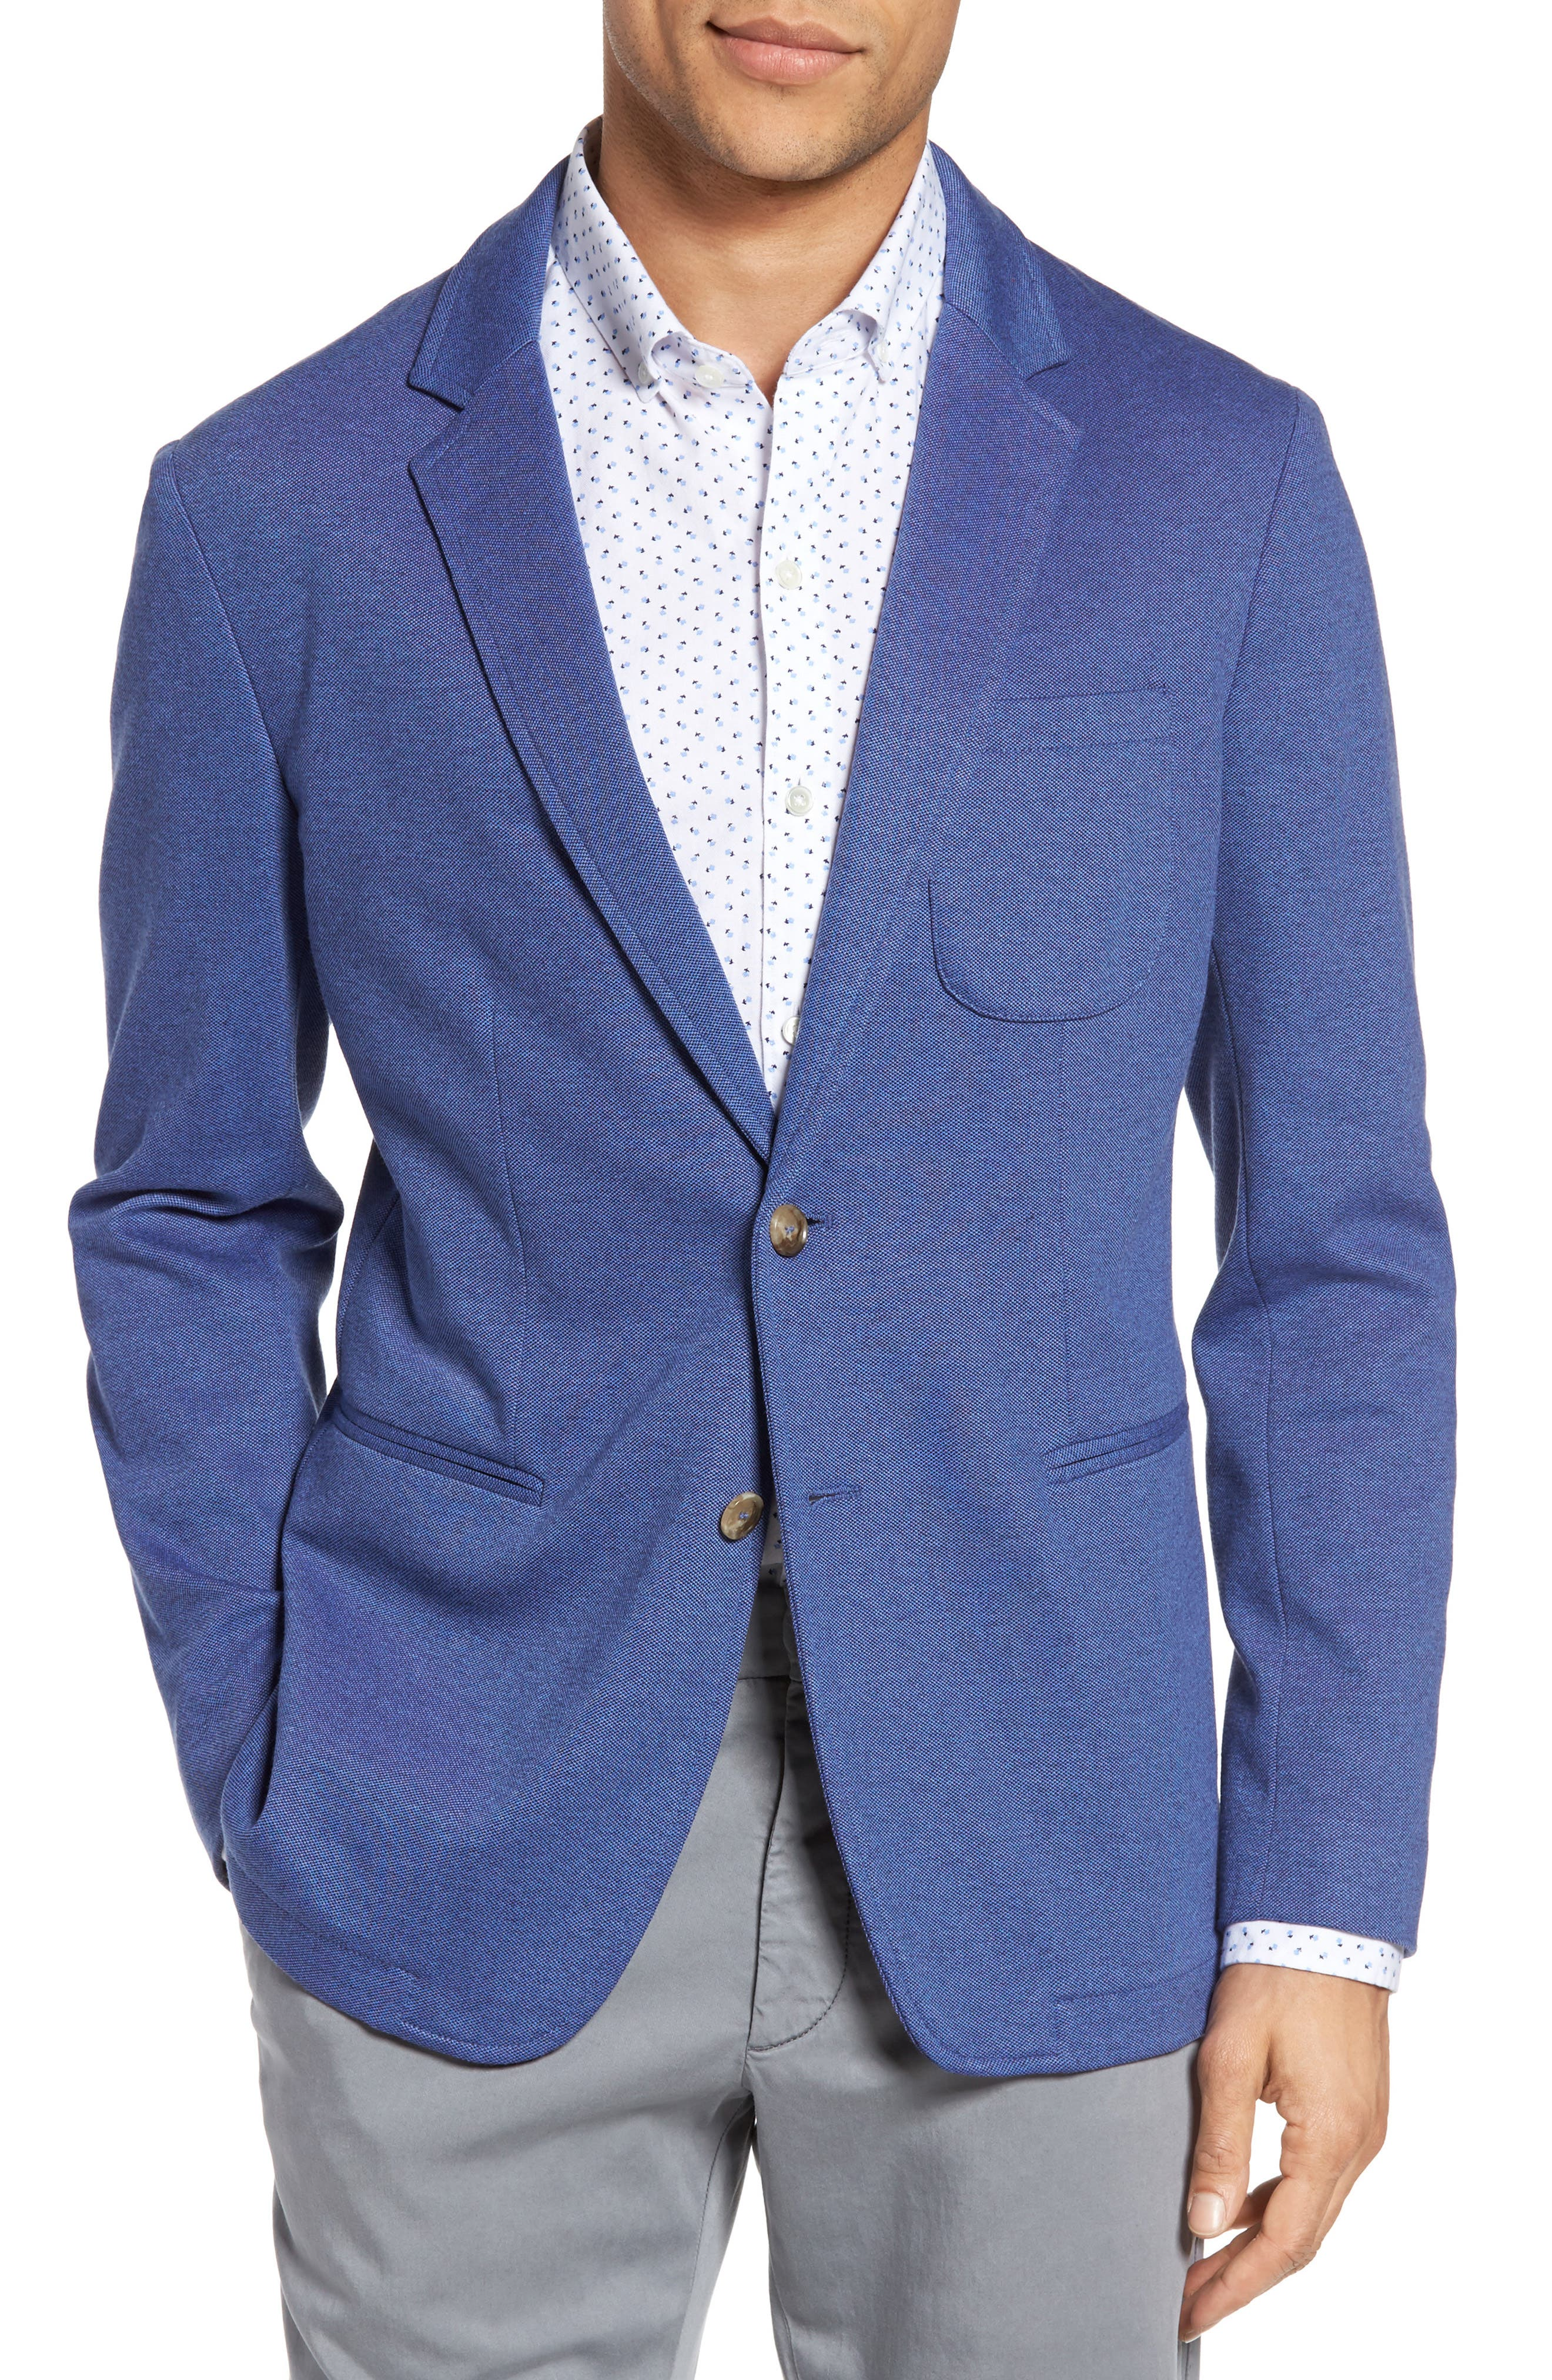 Main Image - Zachary Prell Two-Button Knit Sport Coat